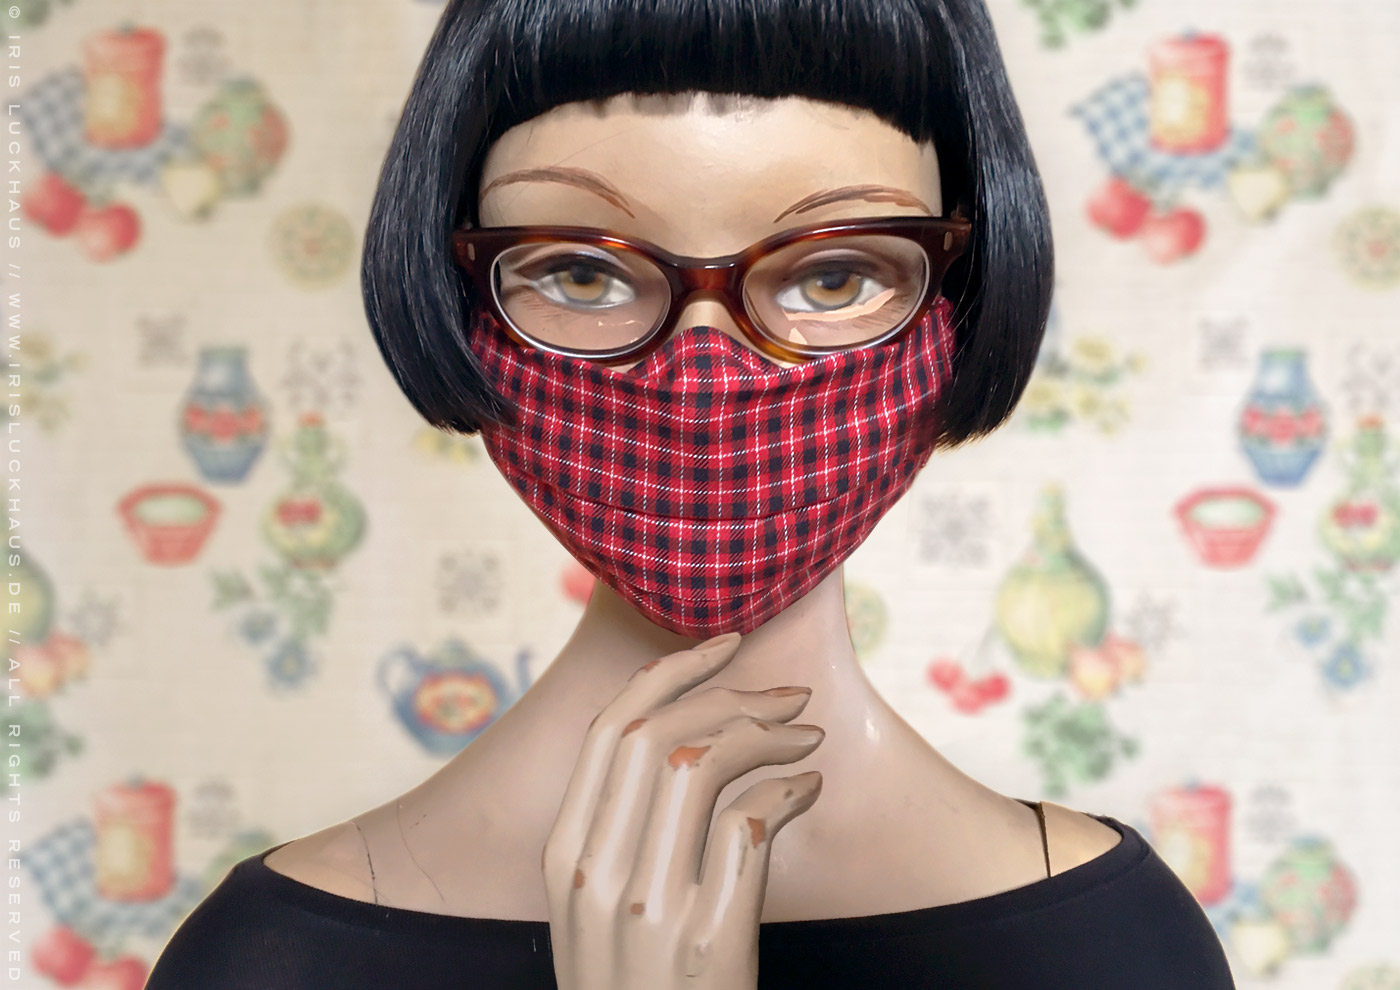 Optimized hybrid cloth mask, fabric mask, mouth-nose mask, face mask or face covering, gapless and fog-free for glasses, to sew DIY with instructions, pattern and template with nose piece or nose wire, filter opening and drawstring channel for ear loops or head ties by Iris Luckhaus